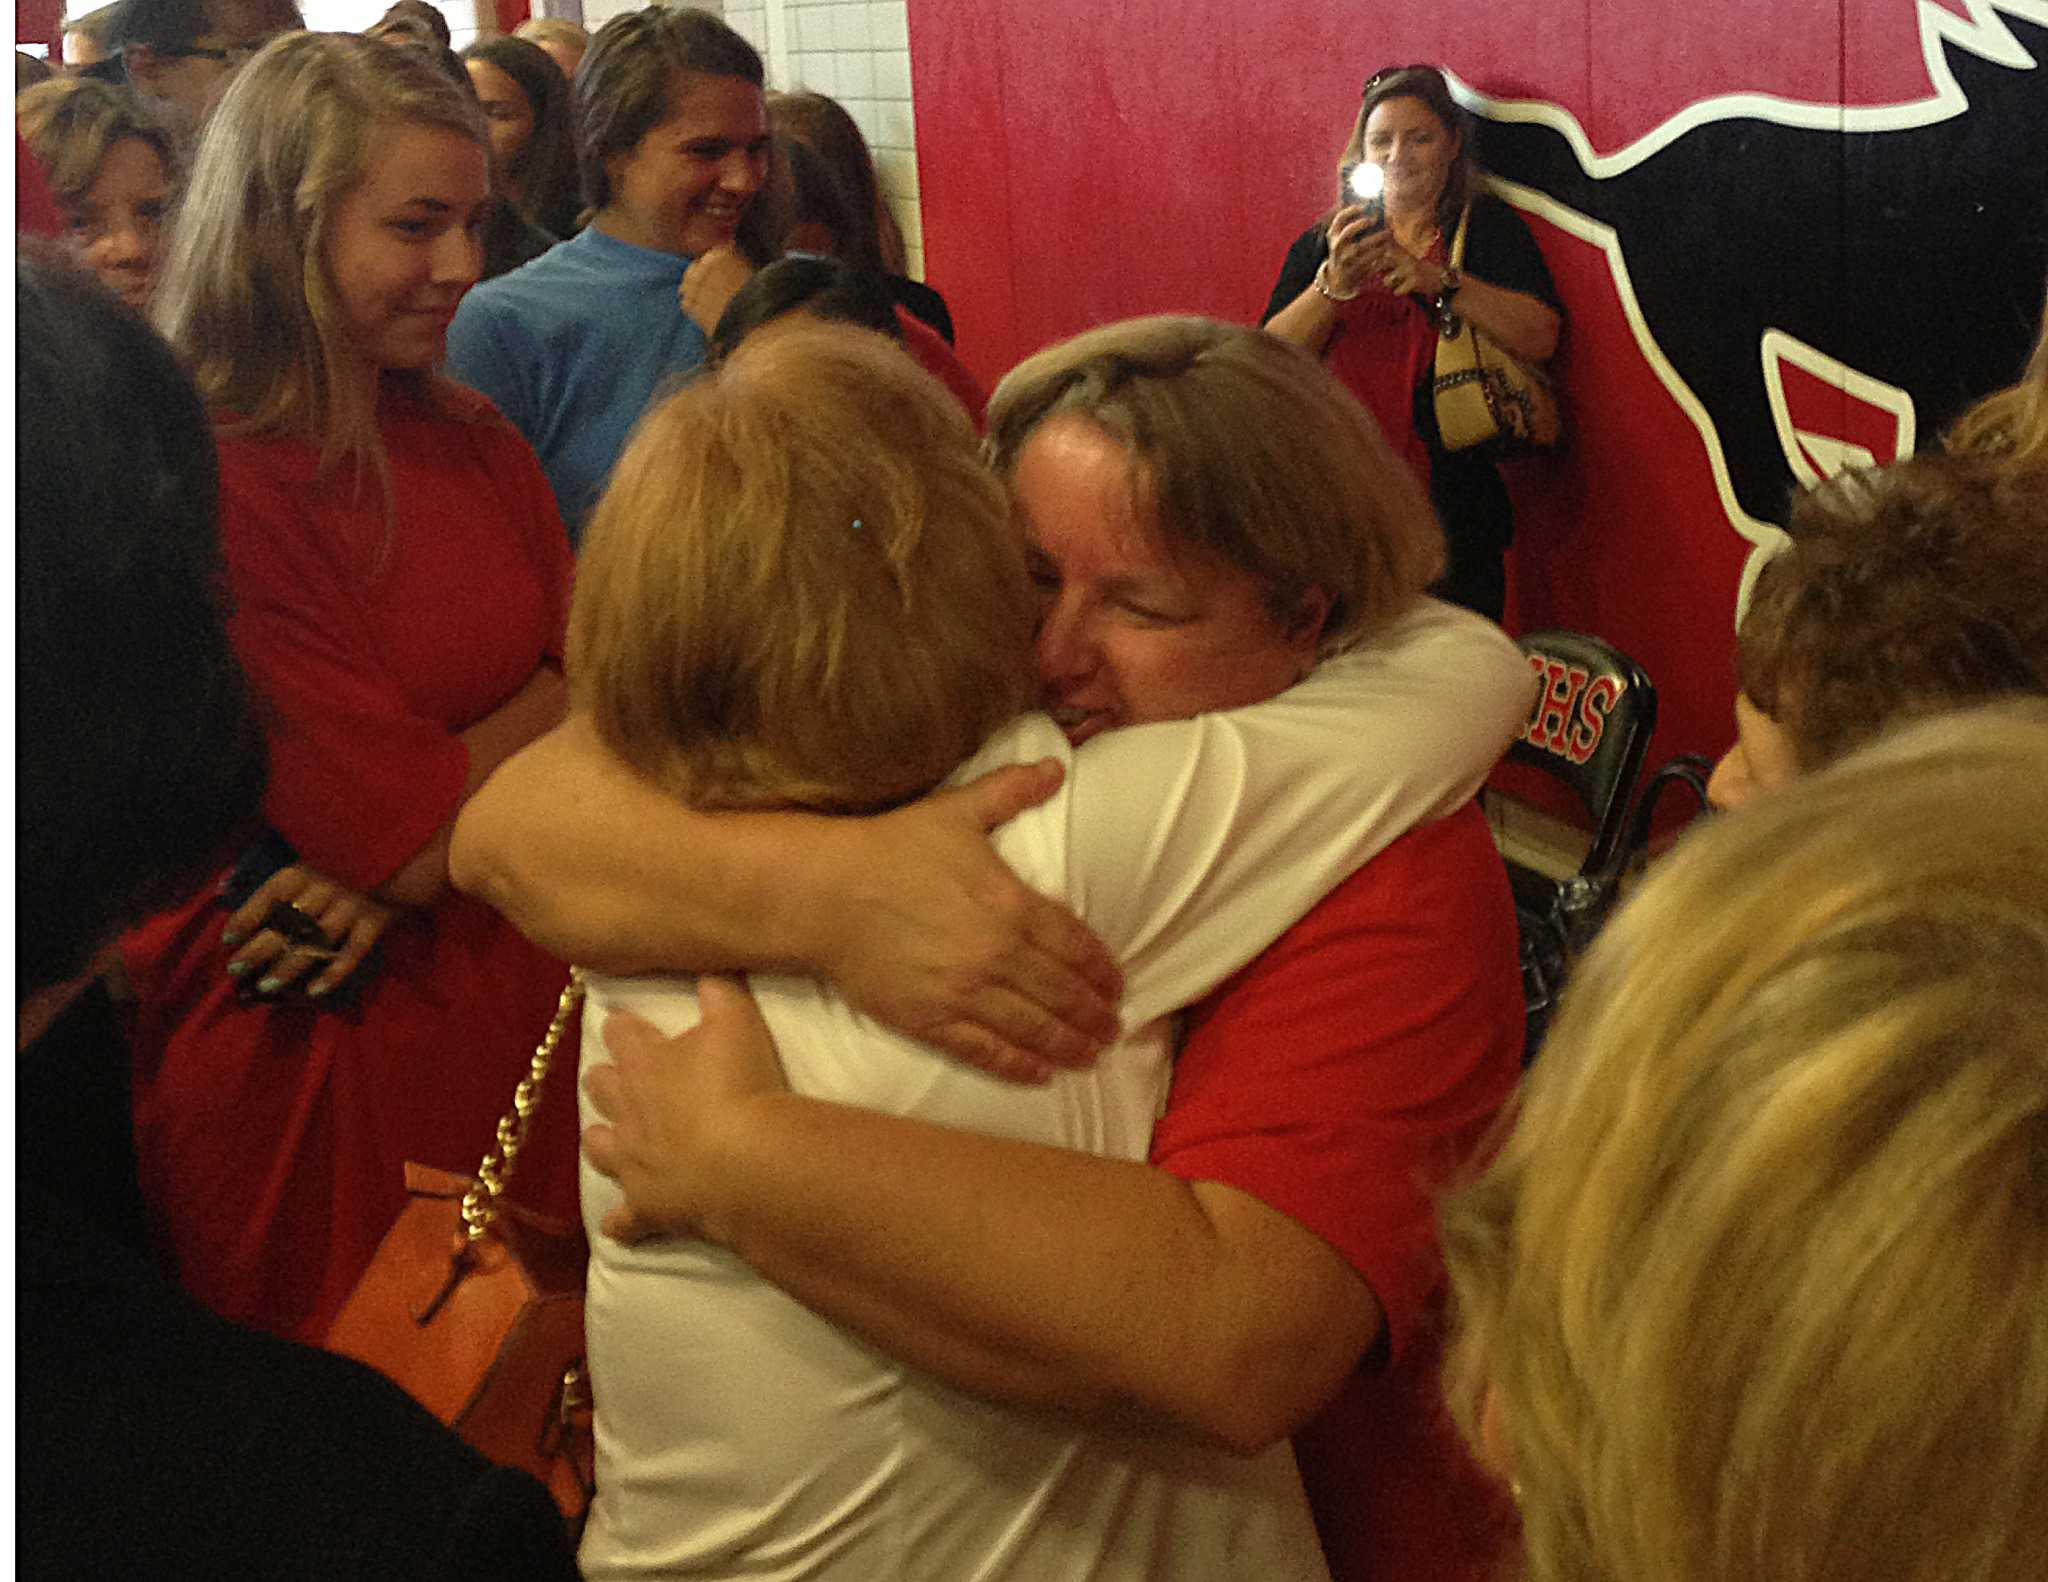 Memorial coach remains an inspiration throughout emotional